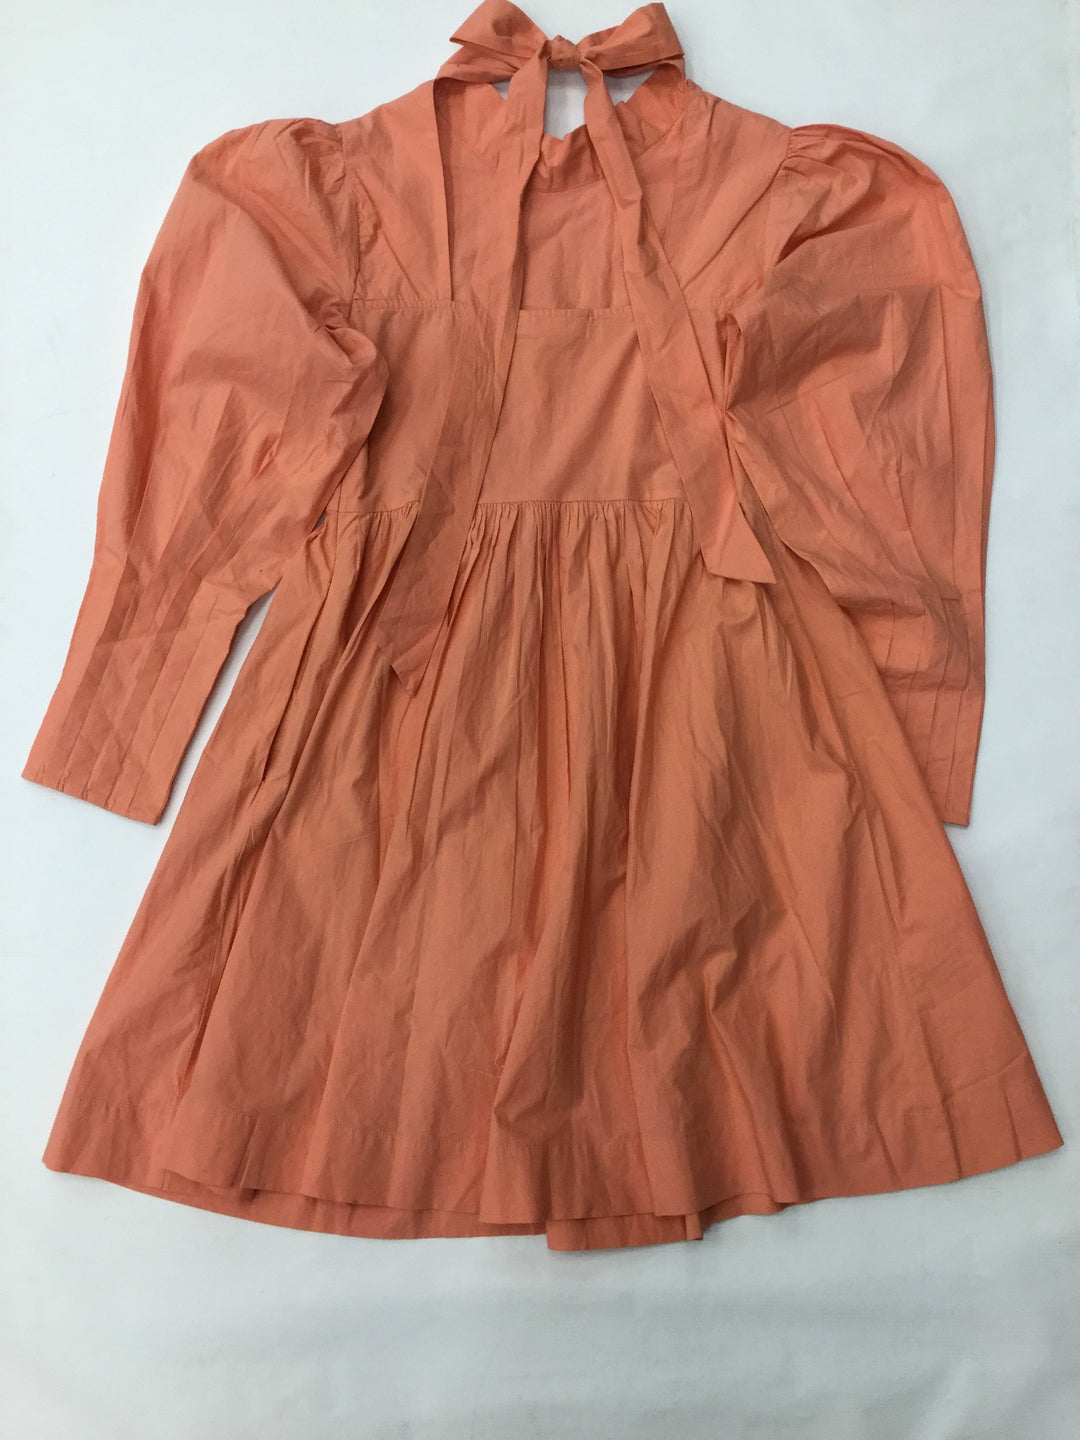 Photo #1 - brand:    cmd , style: dress short long sleeve , color: coral , size: xxs , other info: happy nature - by kate hudson, sku: 125-4893-3195, has a side zipper and pockets